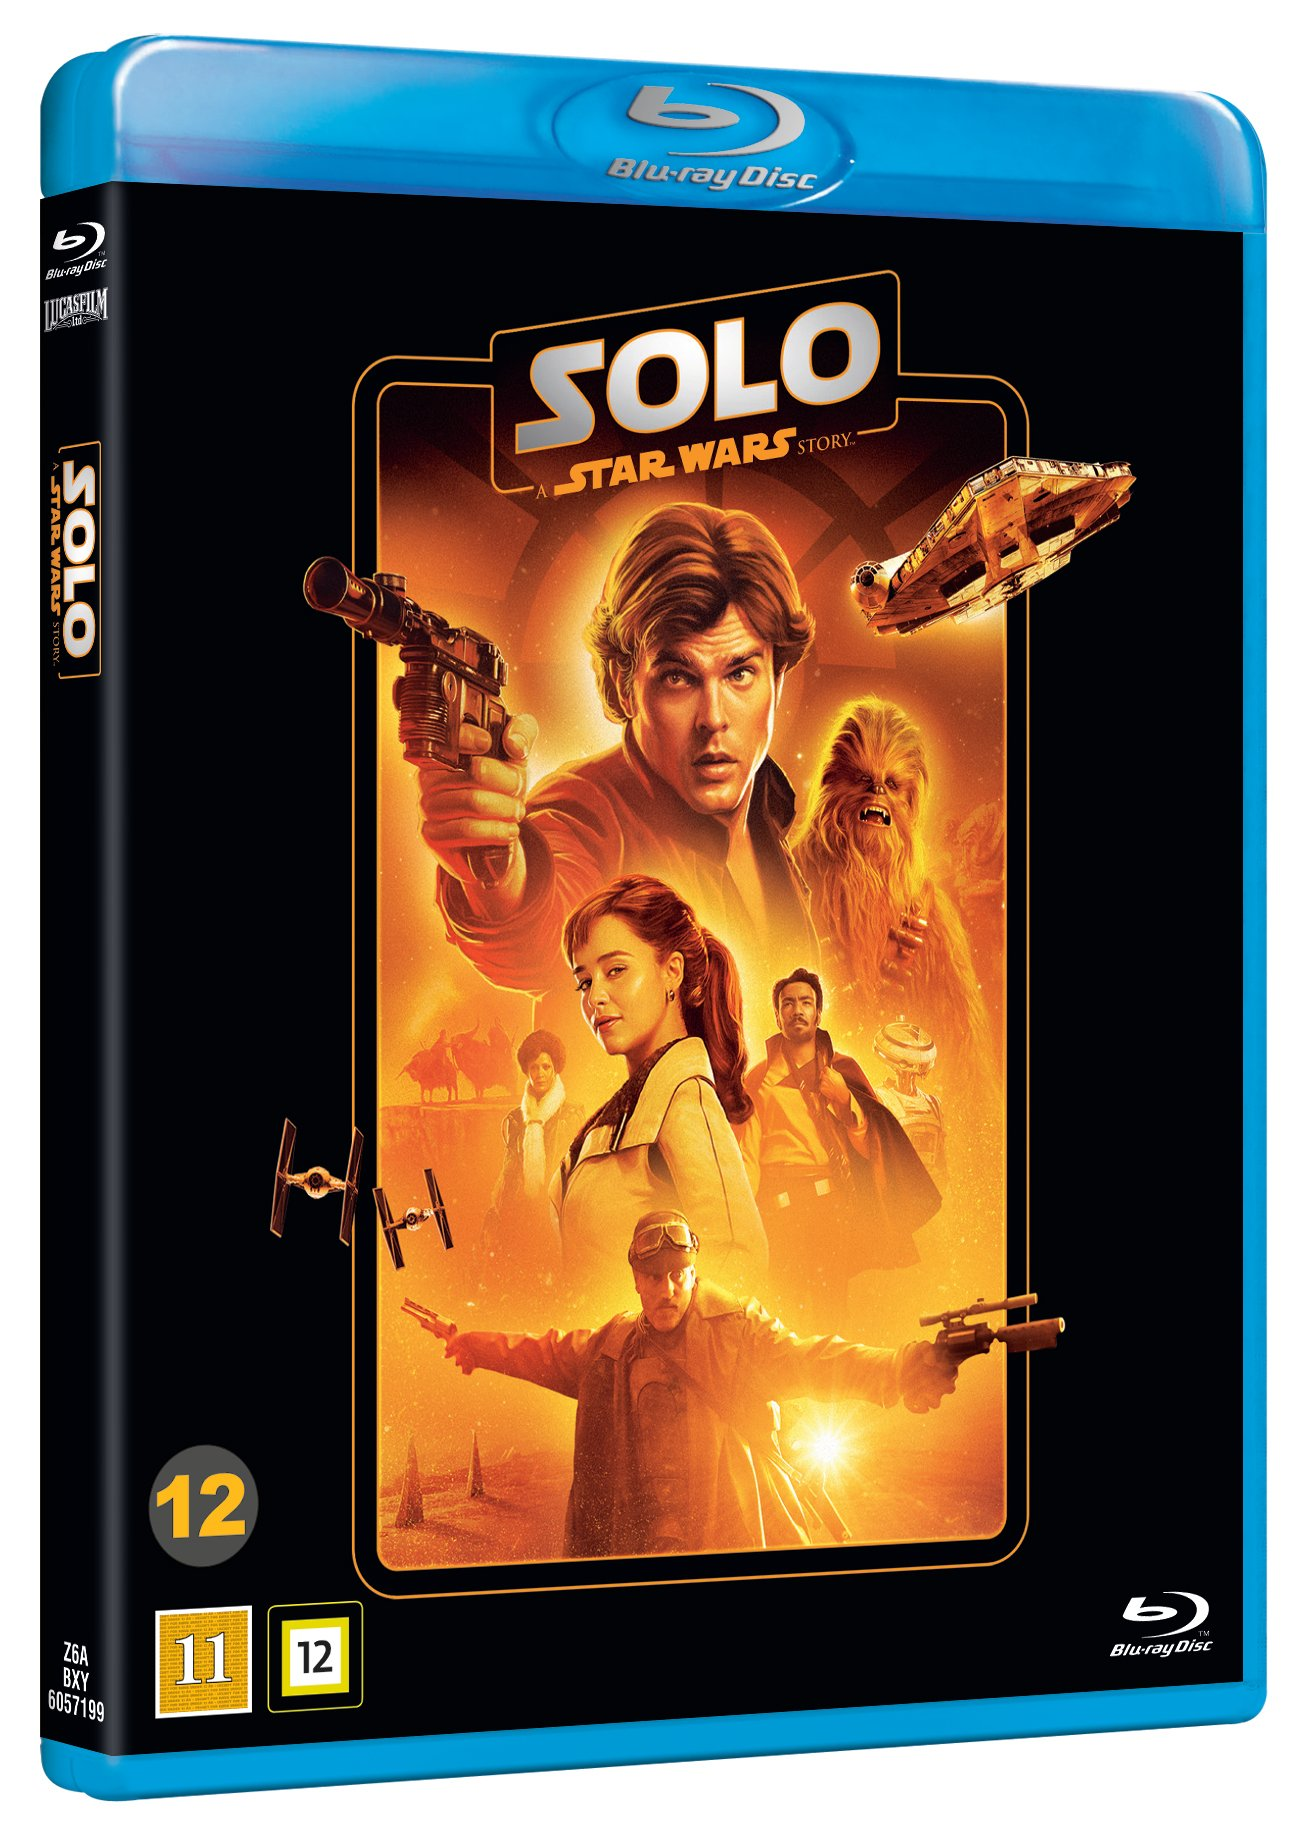 Solo A Star Wars Story - Blu ray